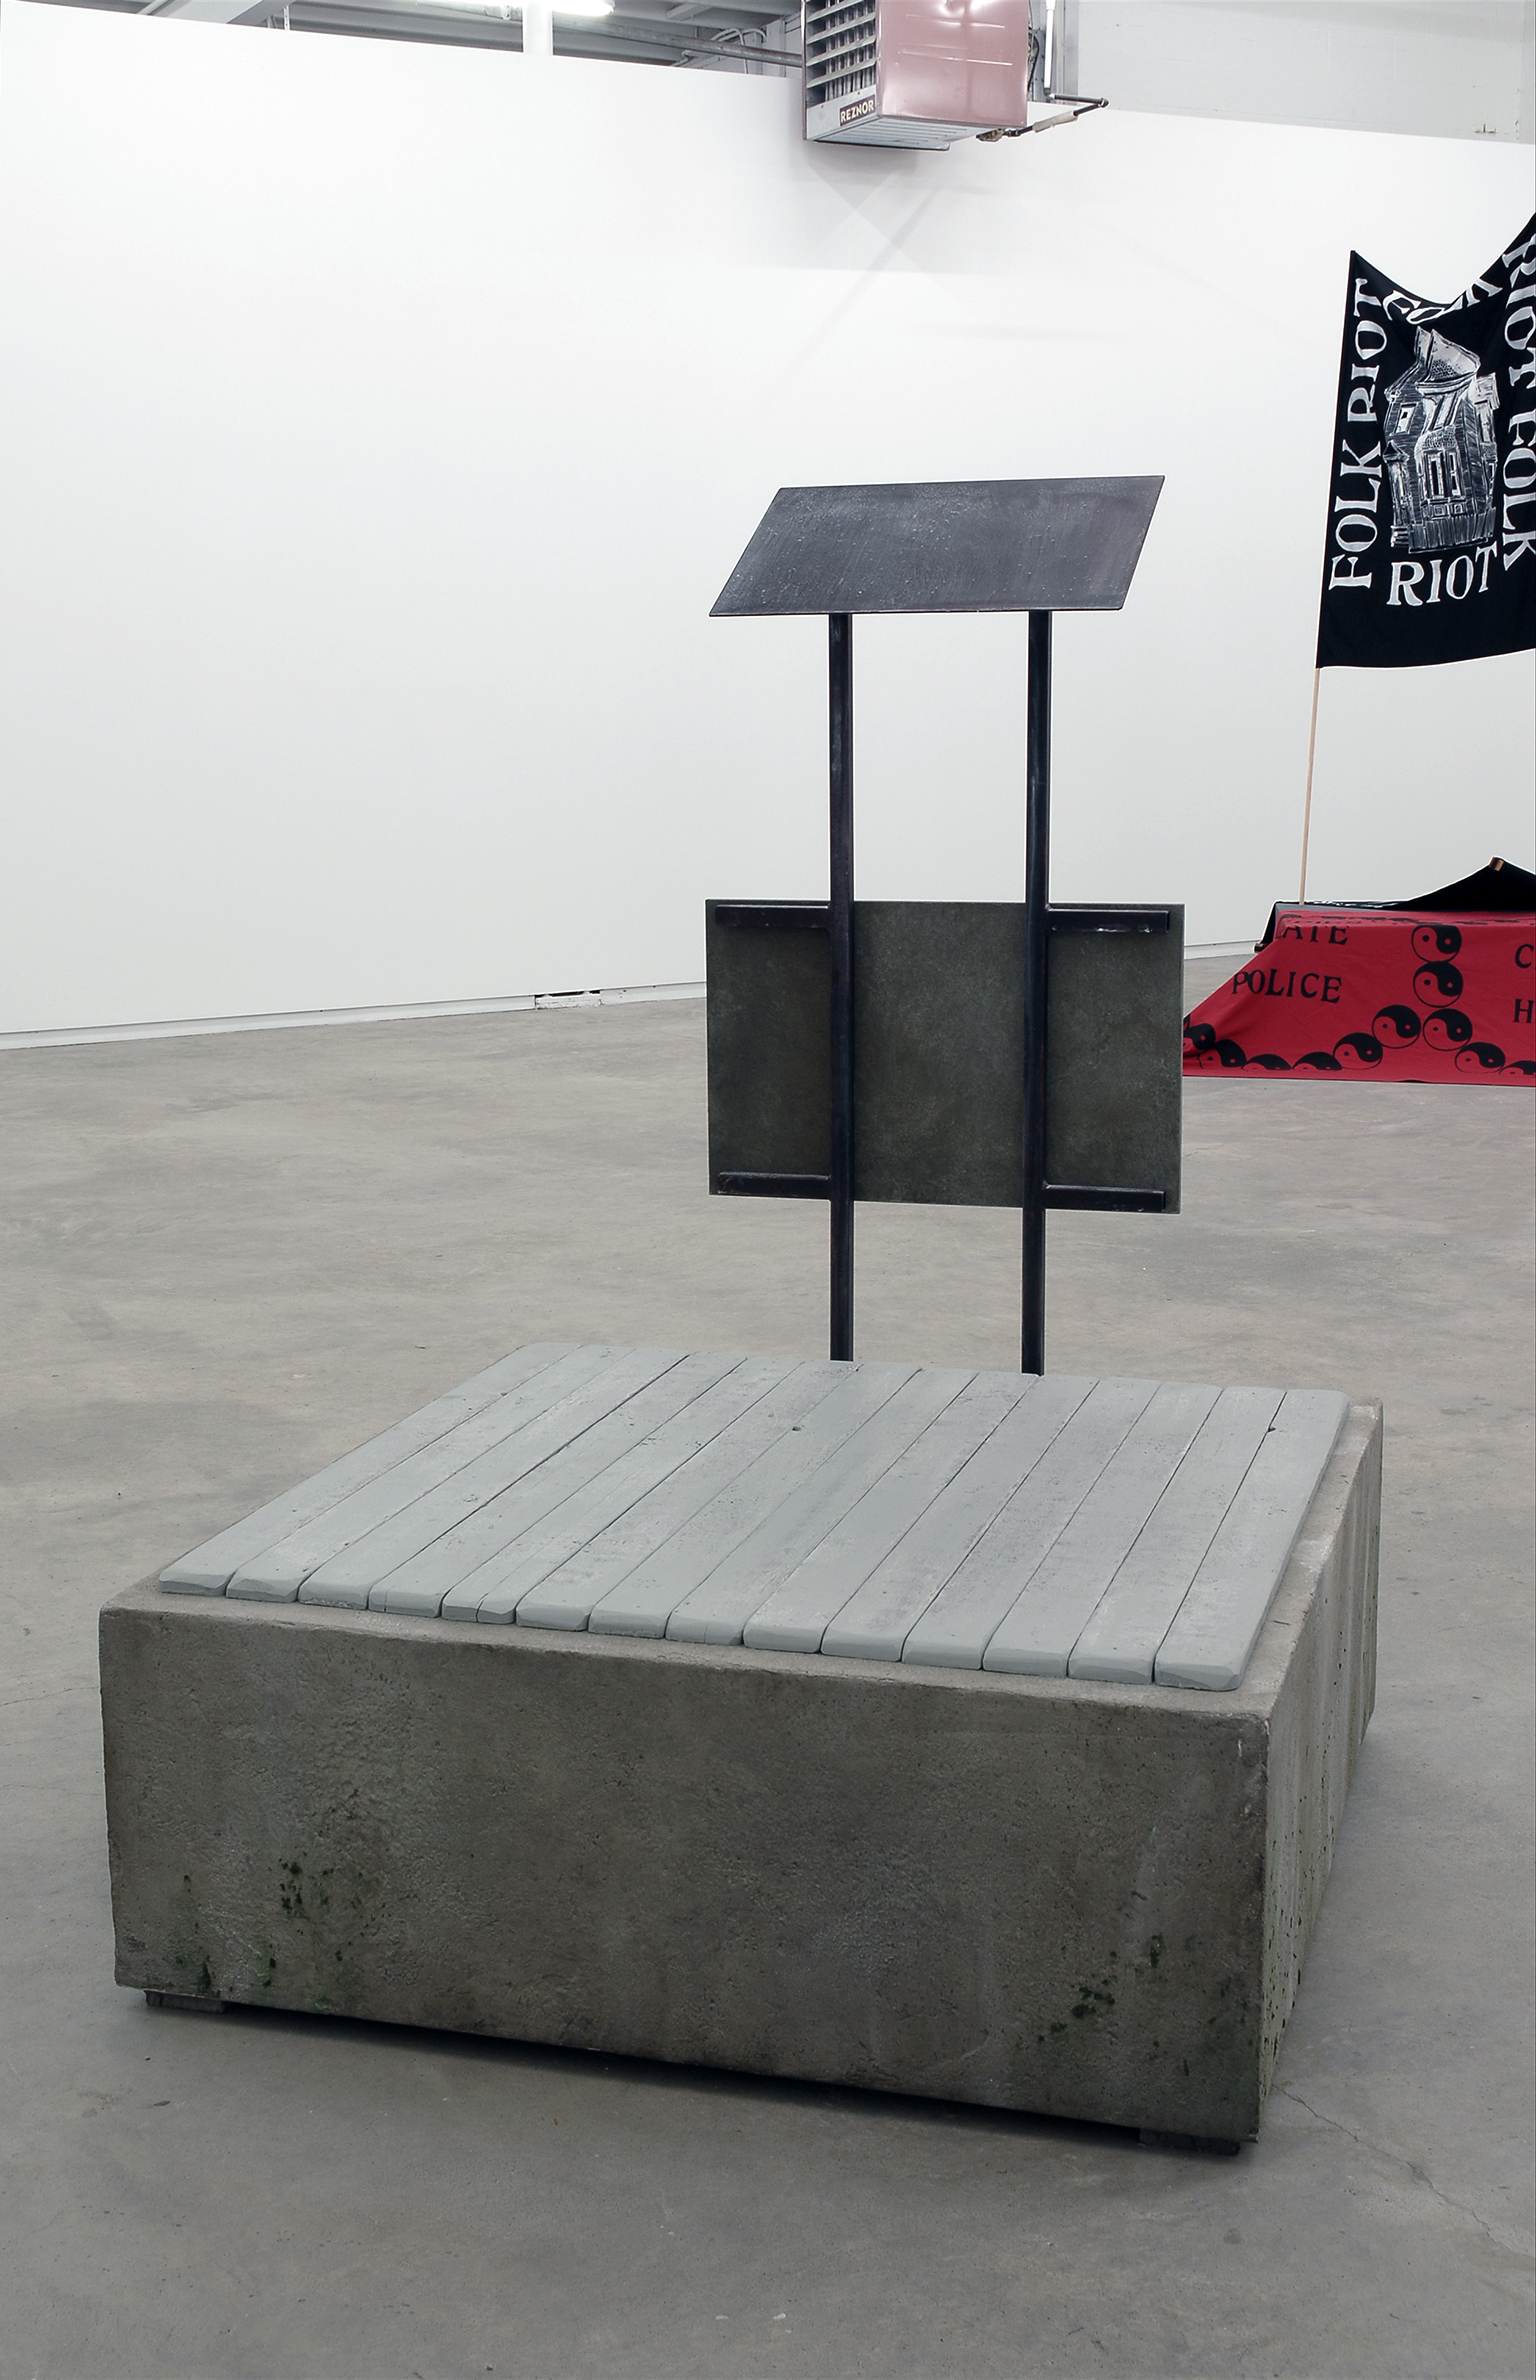 Alex Morrison, Provisional Structure, 2007, wood, drywall mud, angle iron, plastic, acrylic paint, 62 x 54 x 45 in. (158 x 137 x 114 cm) by